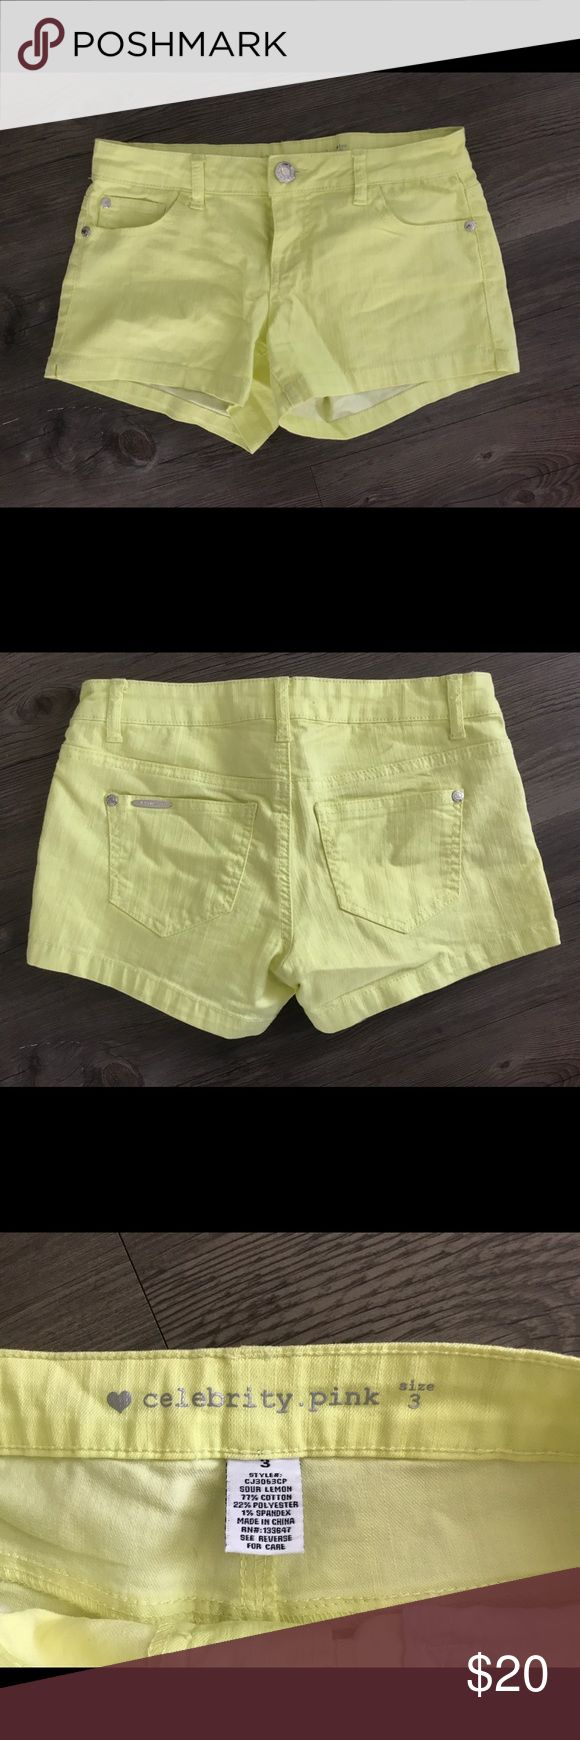 Neon yellow shorts Bright yellow shorts. Never worn but without tags.  From a smoke free home Celebrity Pink Shorts